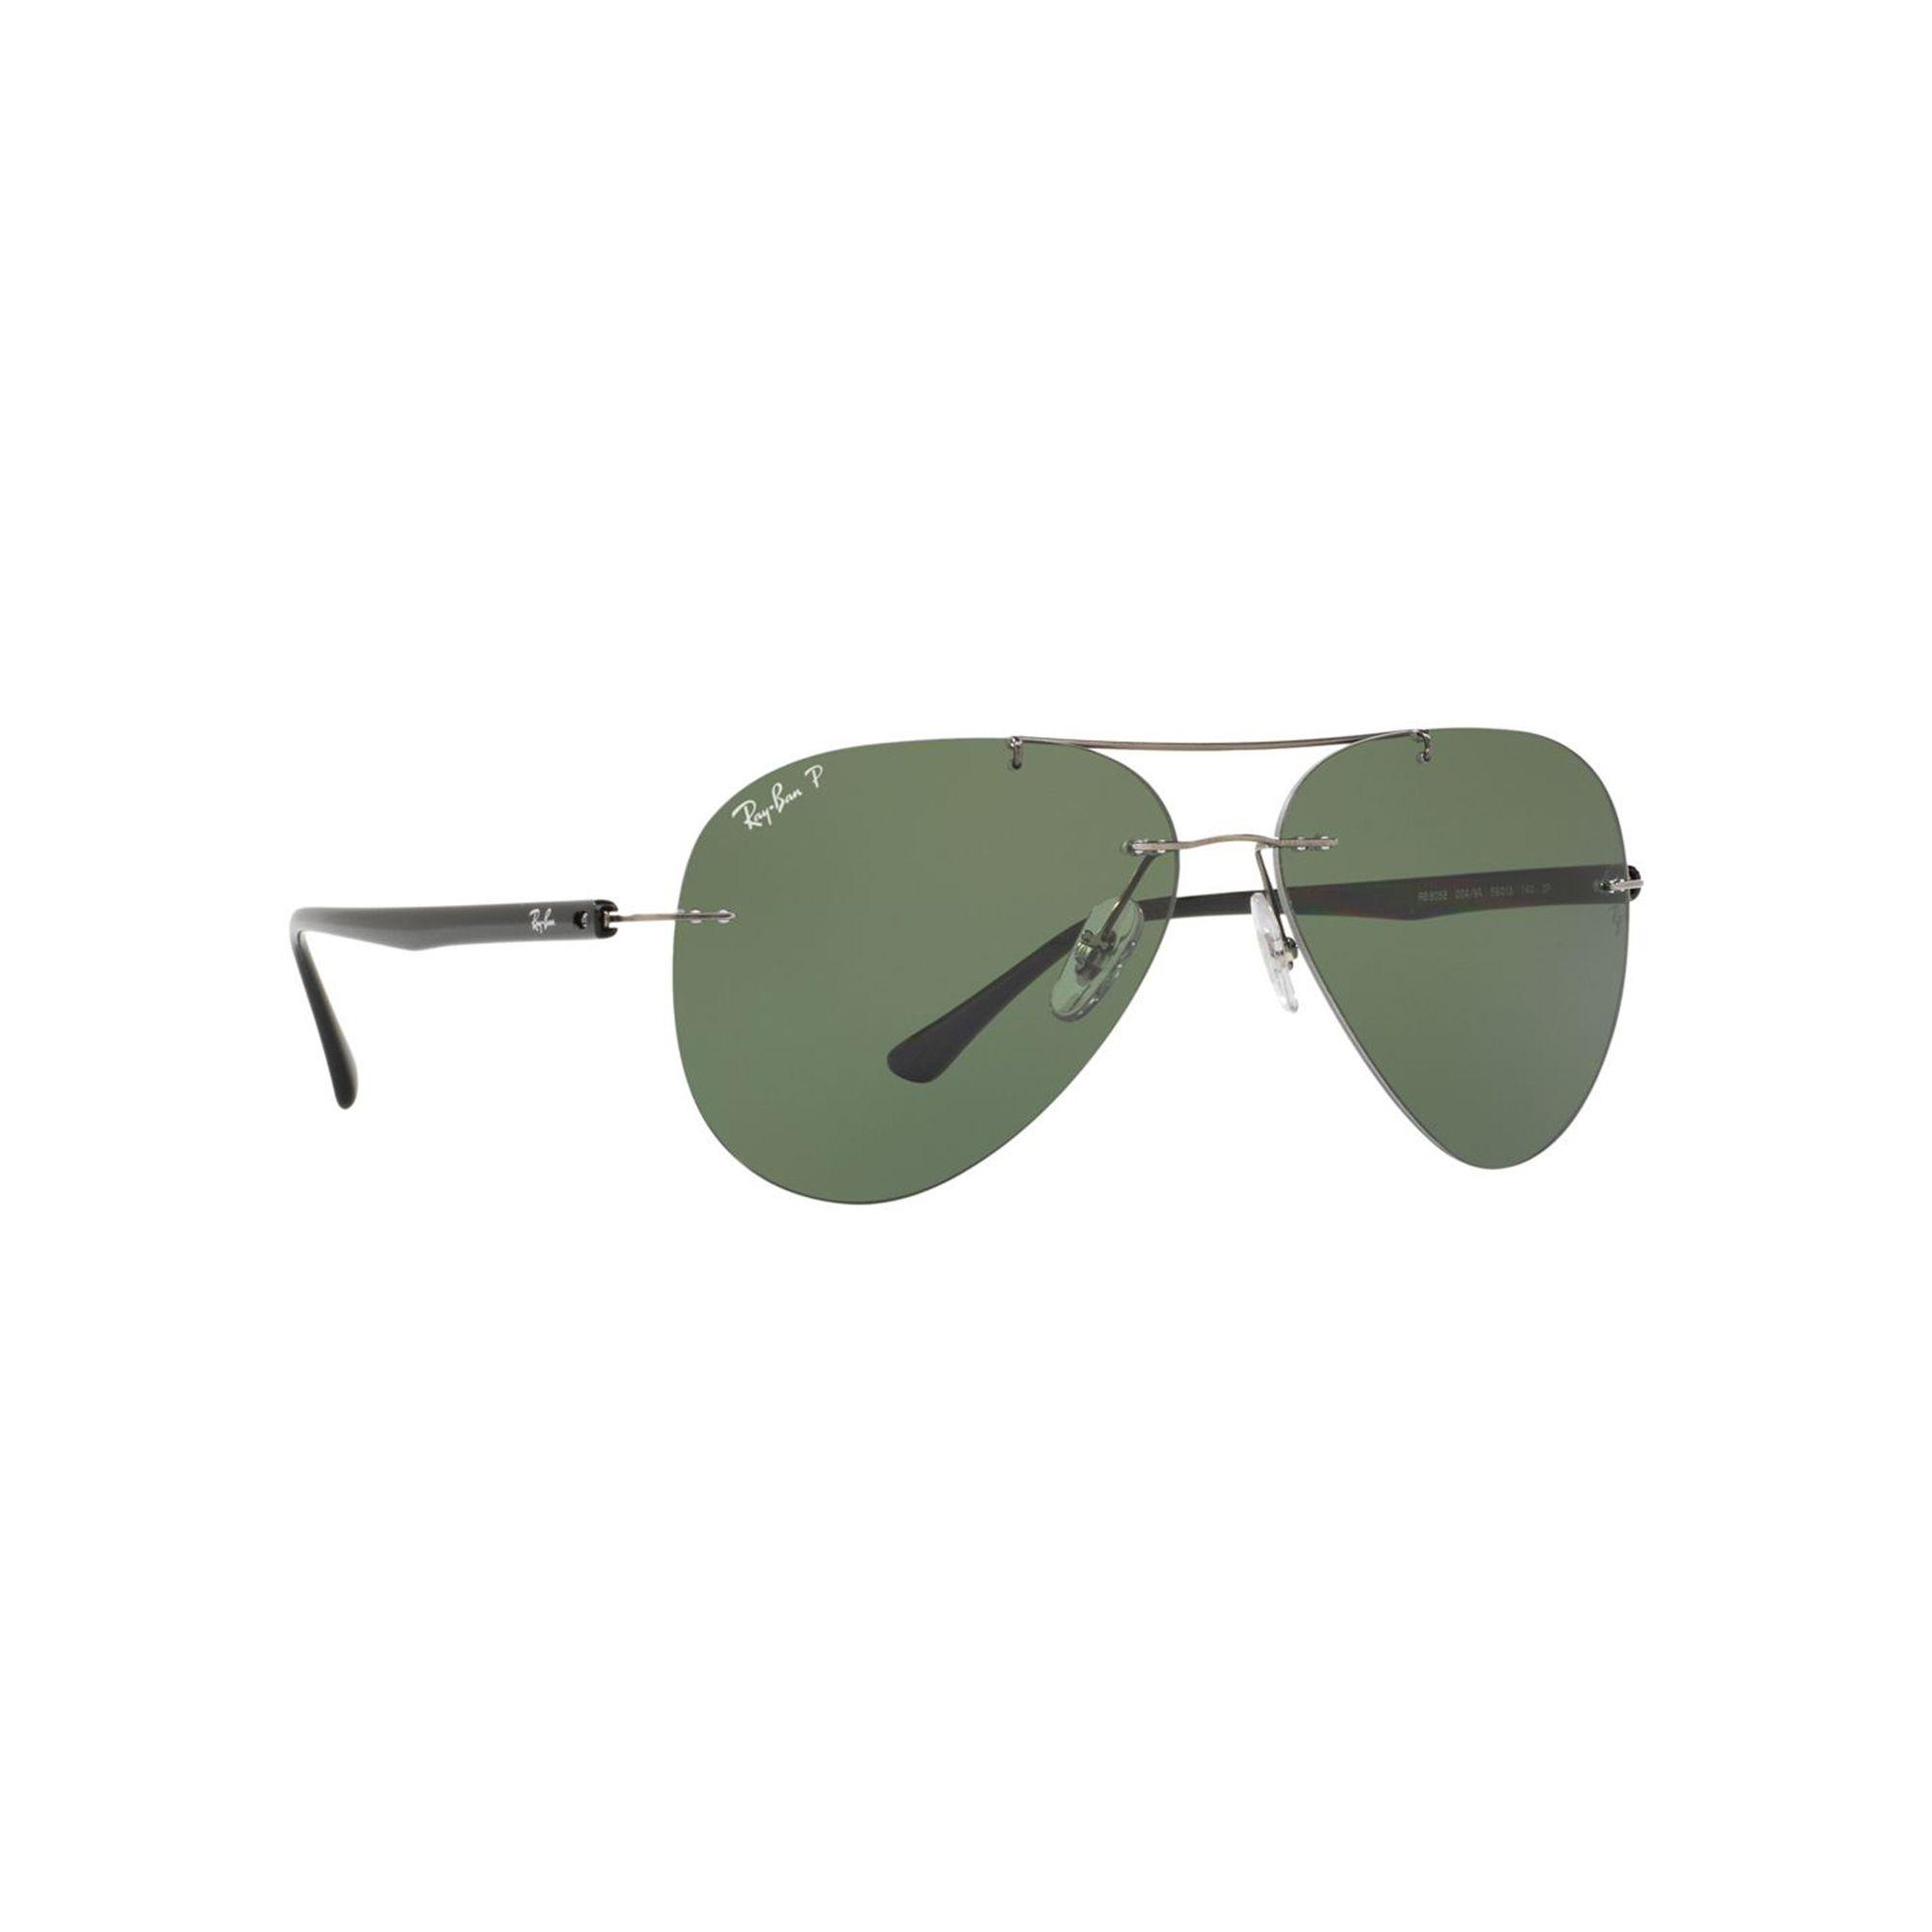 ab02253981 Lyst - Ray-Ban Gunmetal Rb8058 Pilot Sunglasses in Gray